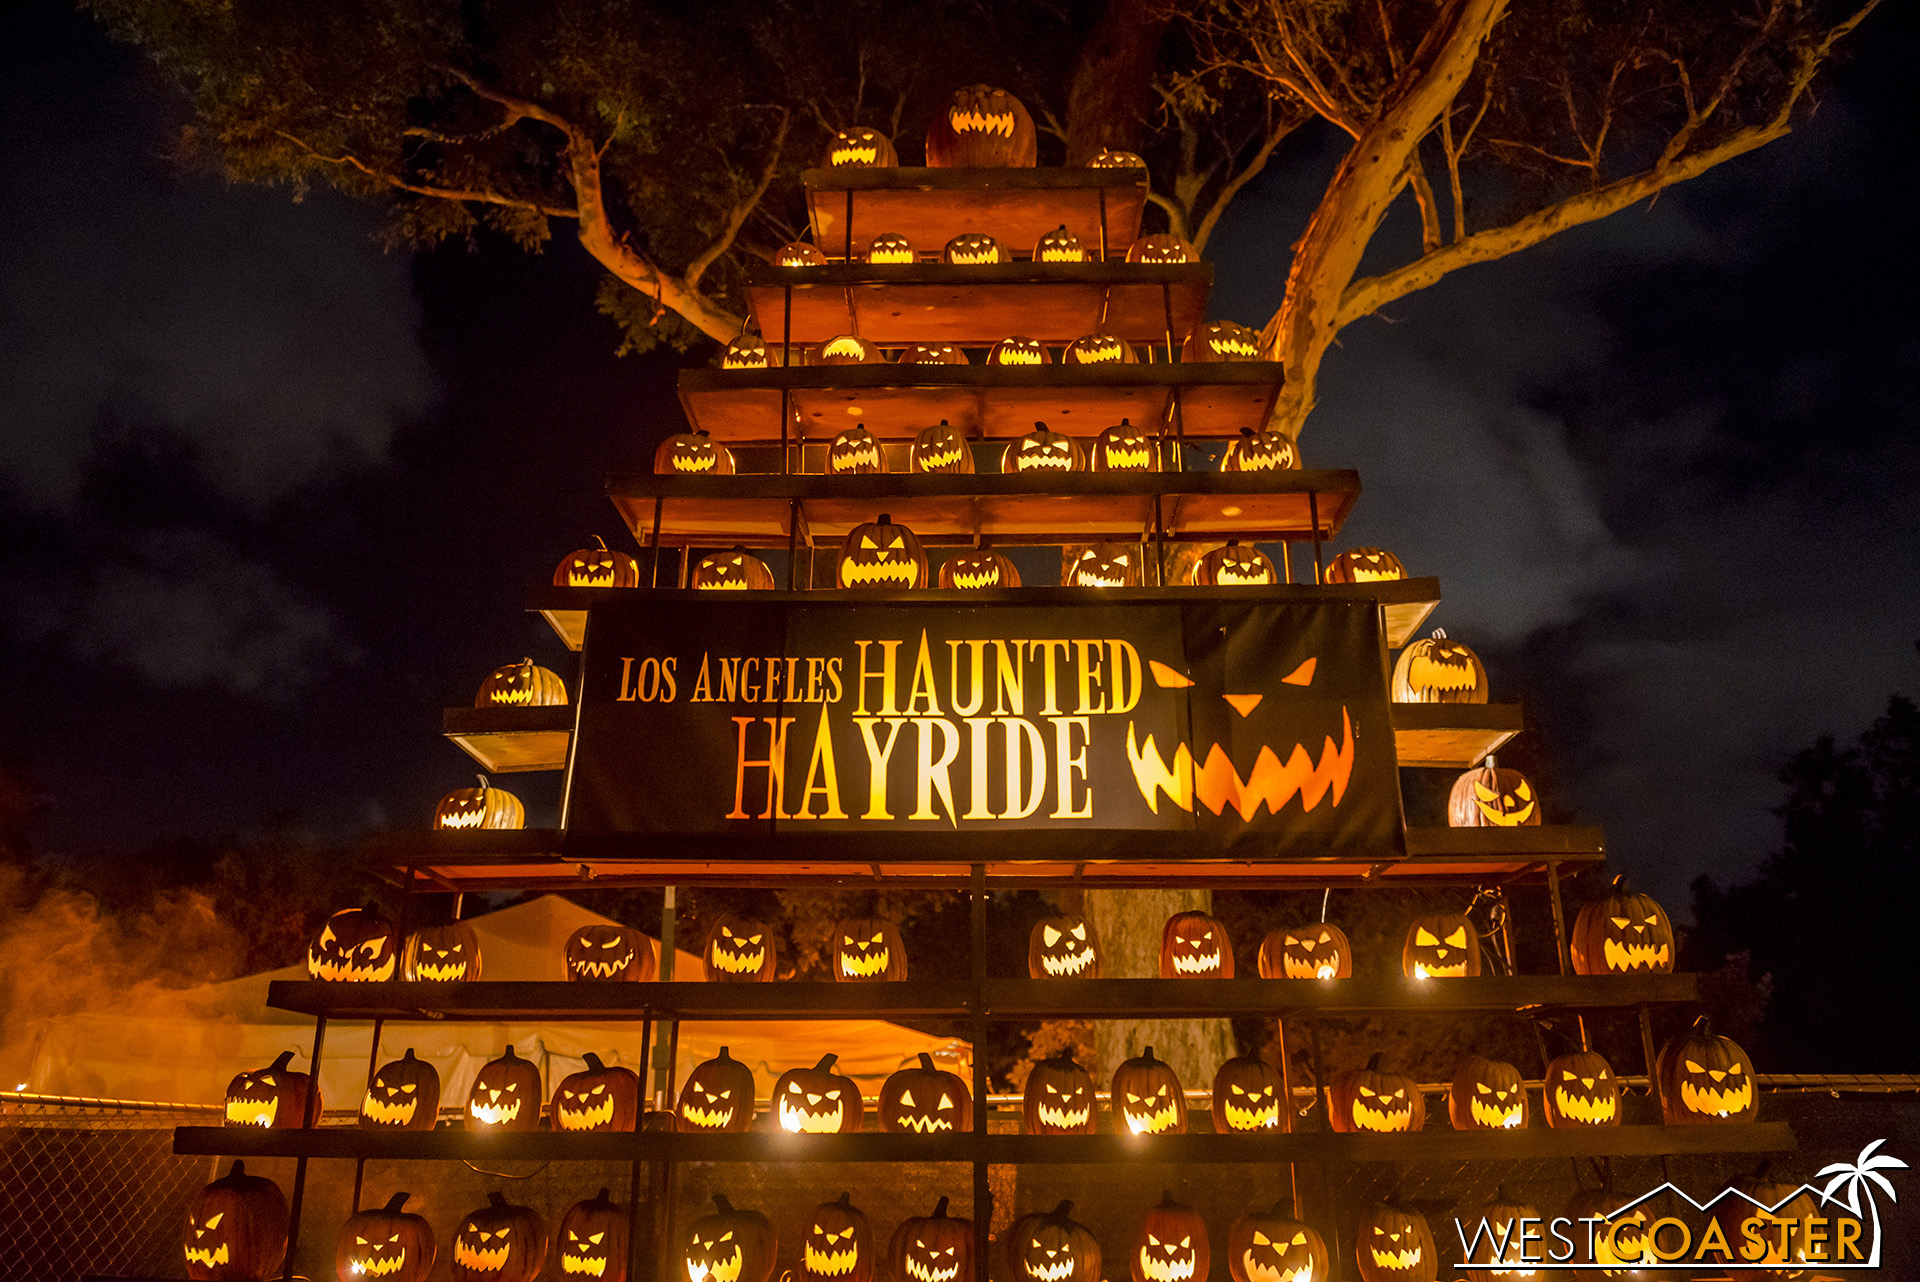 The L.A. Haunted Hayride's iconic tower of jack-o-lanterns remains unchanged, but pretty much everything else about this event has!